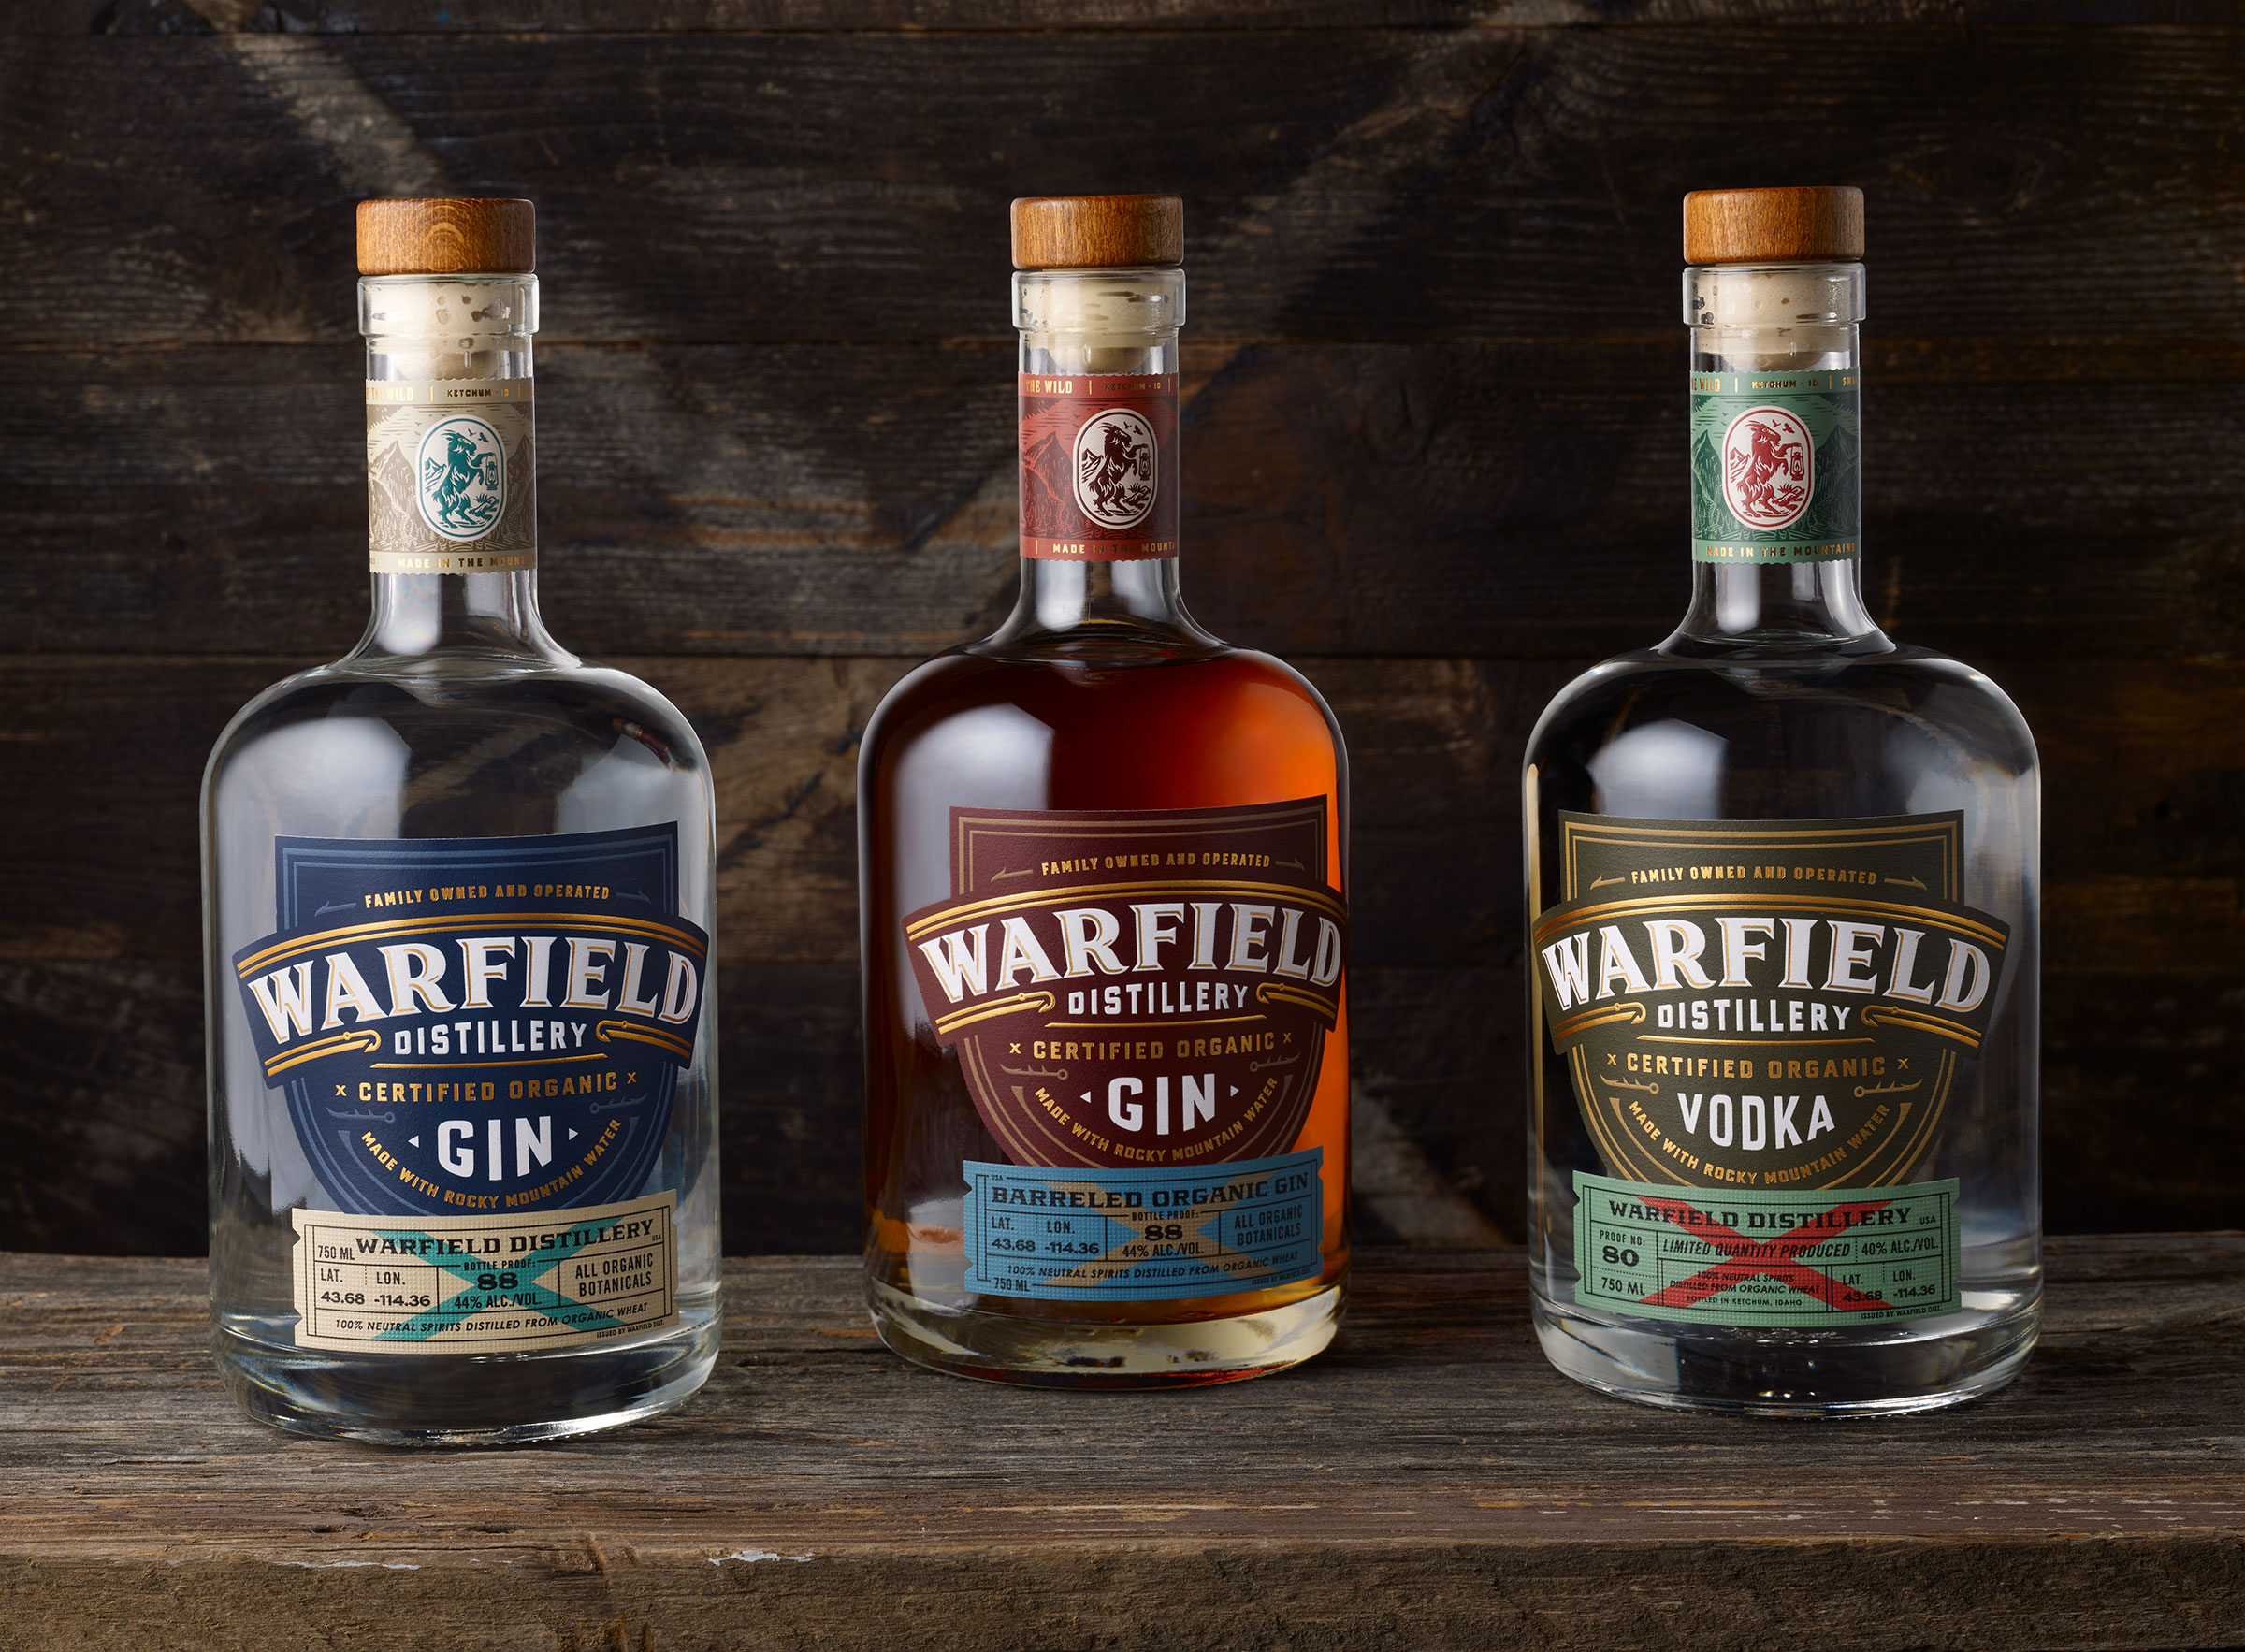 Chad Michael Studio Rebranding for Warfield Distillery Whiskey